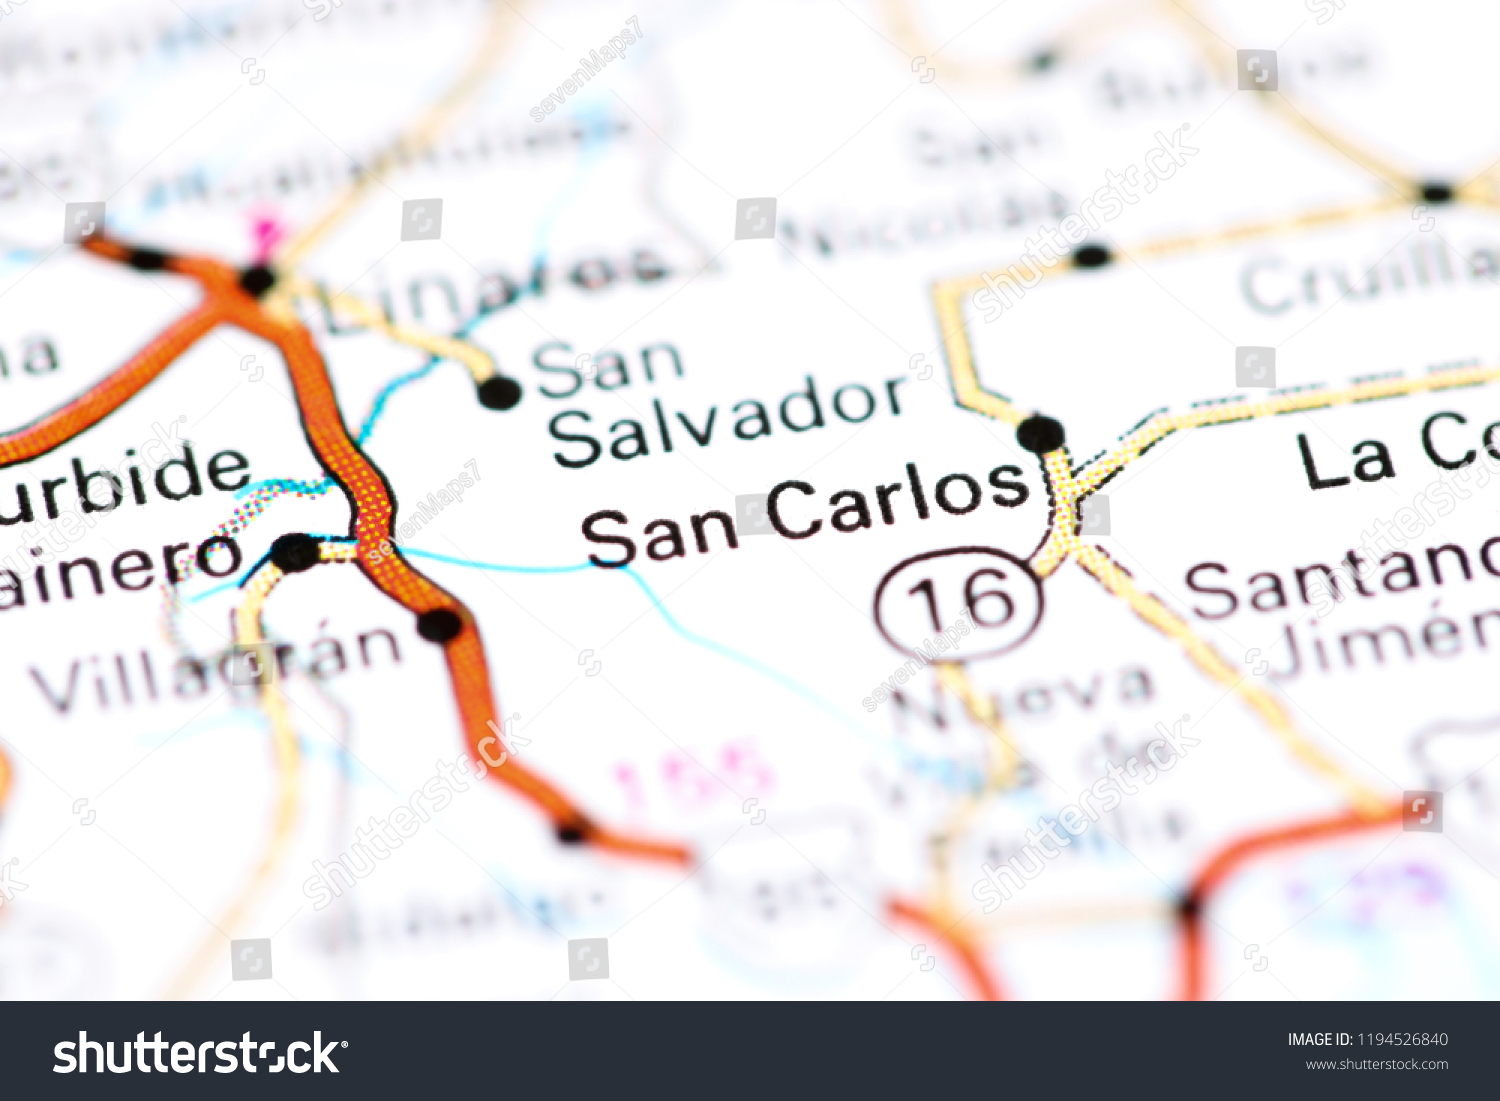 San Carlos Mexico On Map Stock Photo (Edit Now) 1194526840 ...